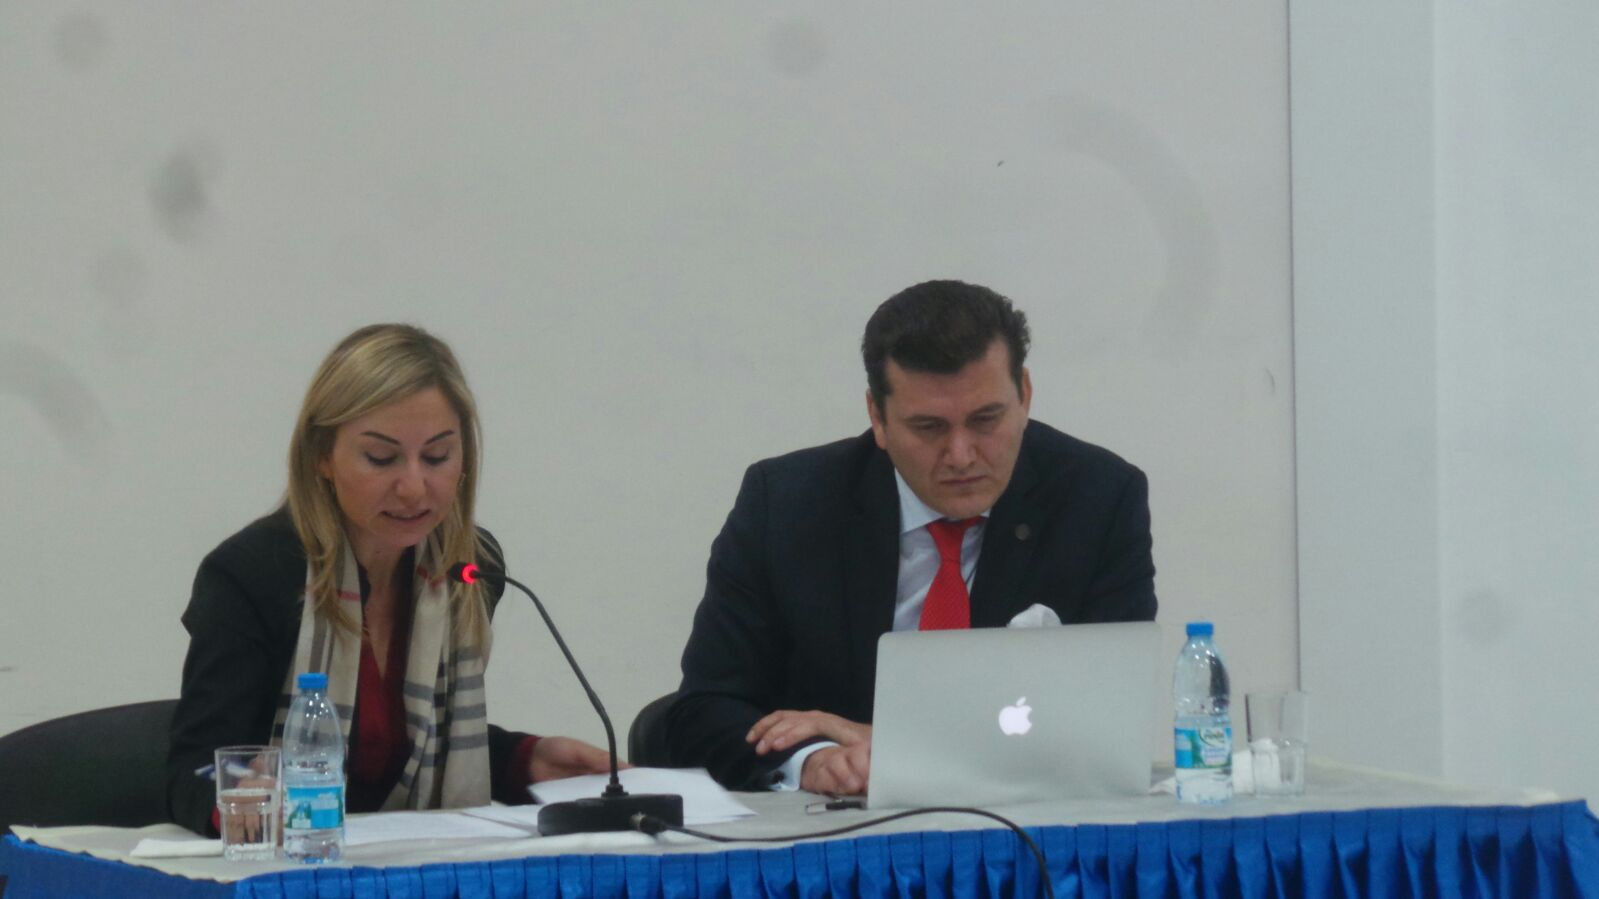 Dec 14, 2015 - Elmadag Law Firm Speaks At The Energy Law Seminar in Suleyman Demirel University - NEWS - Elmadag Law Office